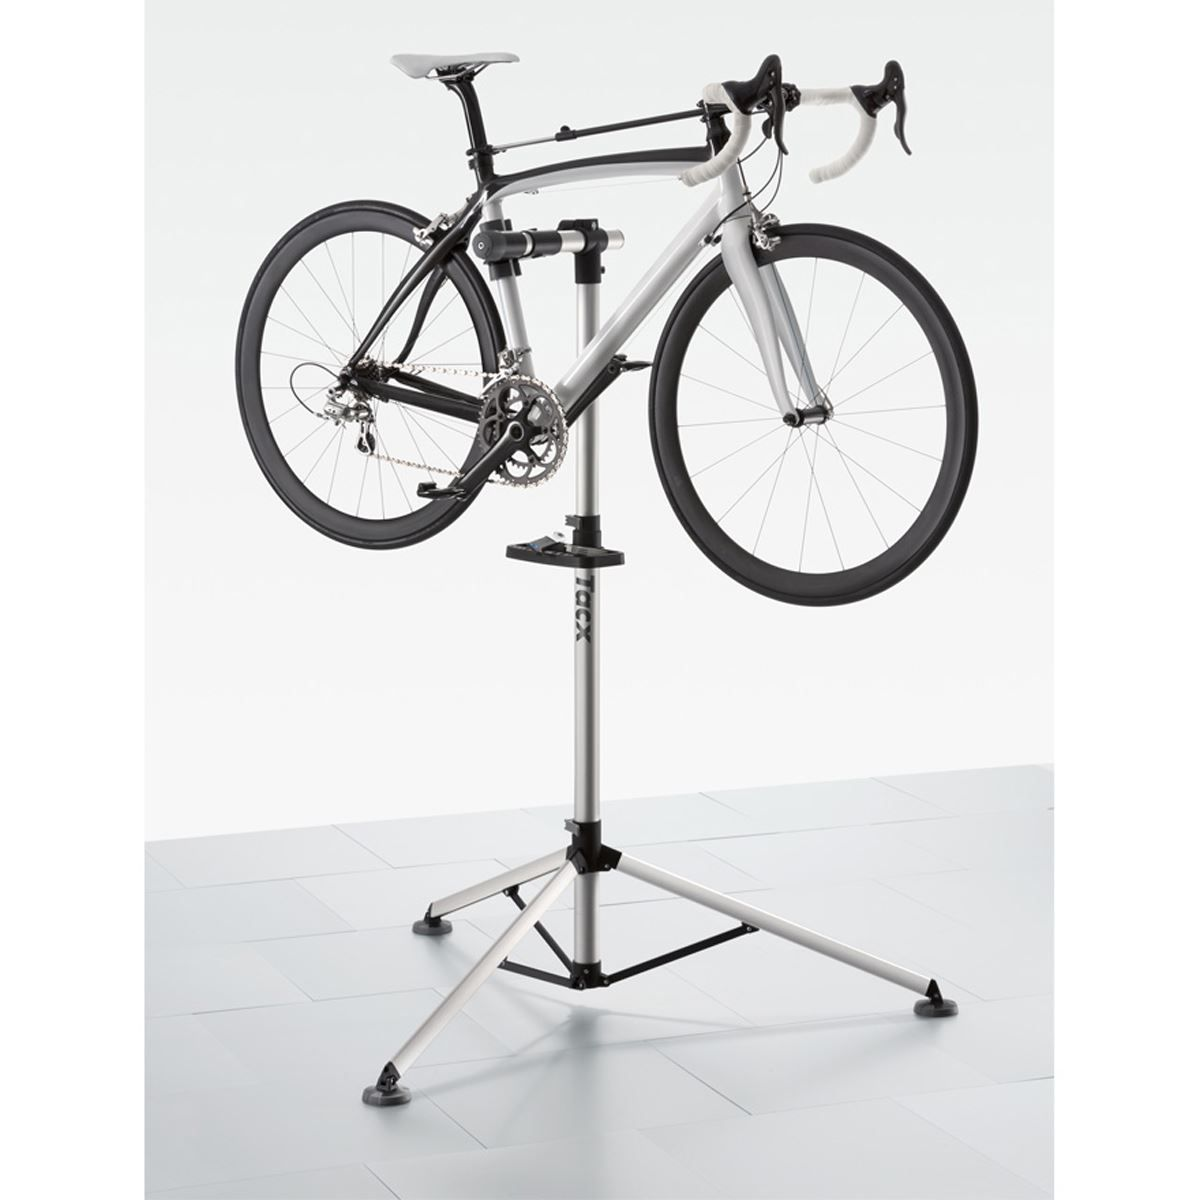 Tacx Spider Professional Workstand: